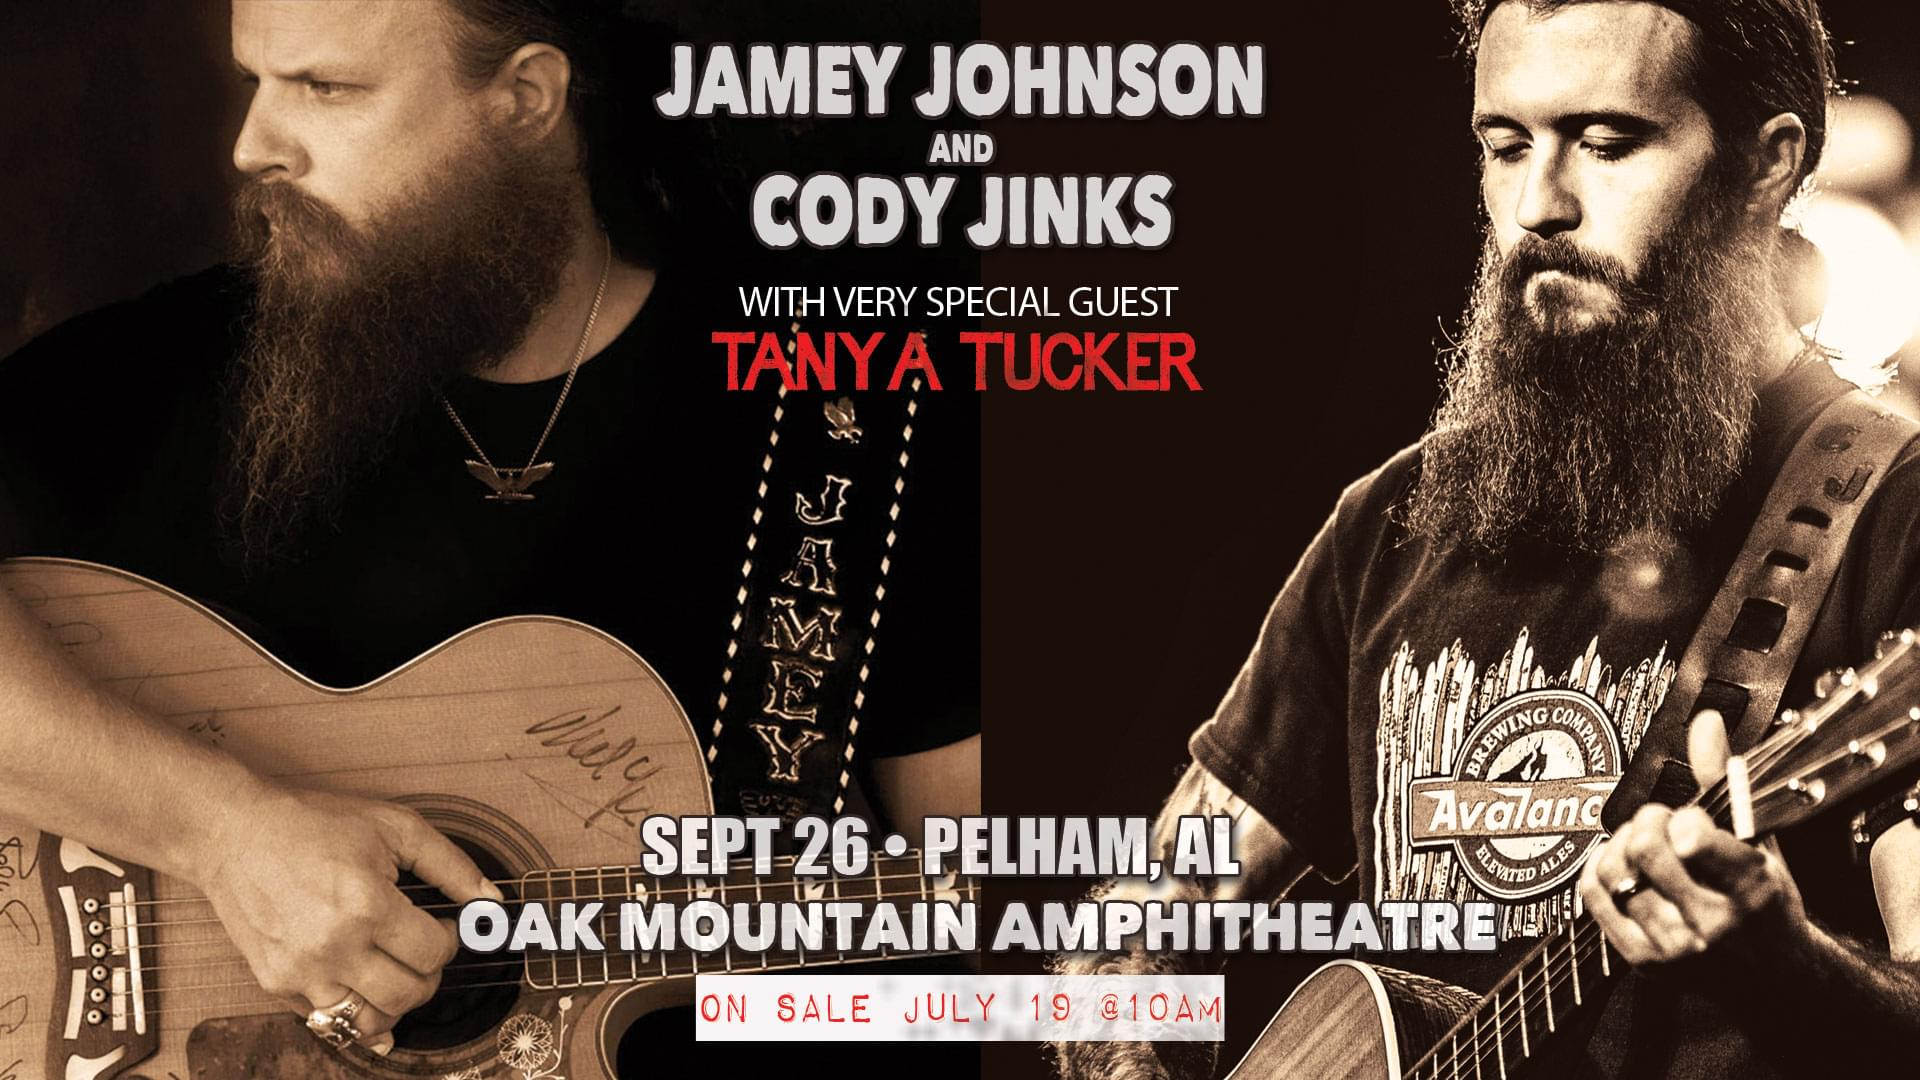 Jamey Johnson & Cody Jinks Oak Mountain Amphitheater September 26th